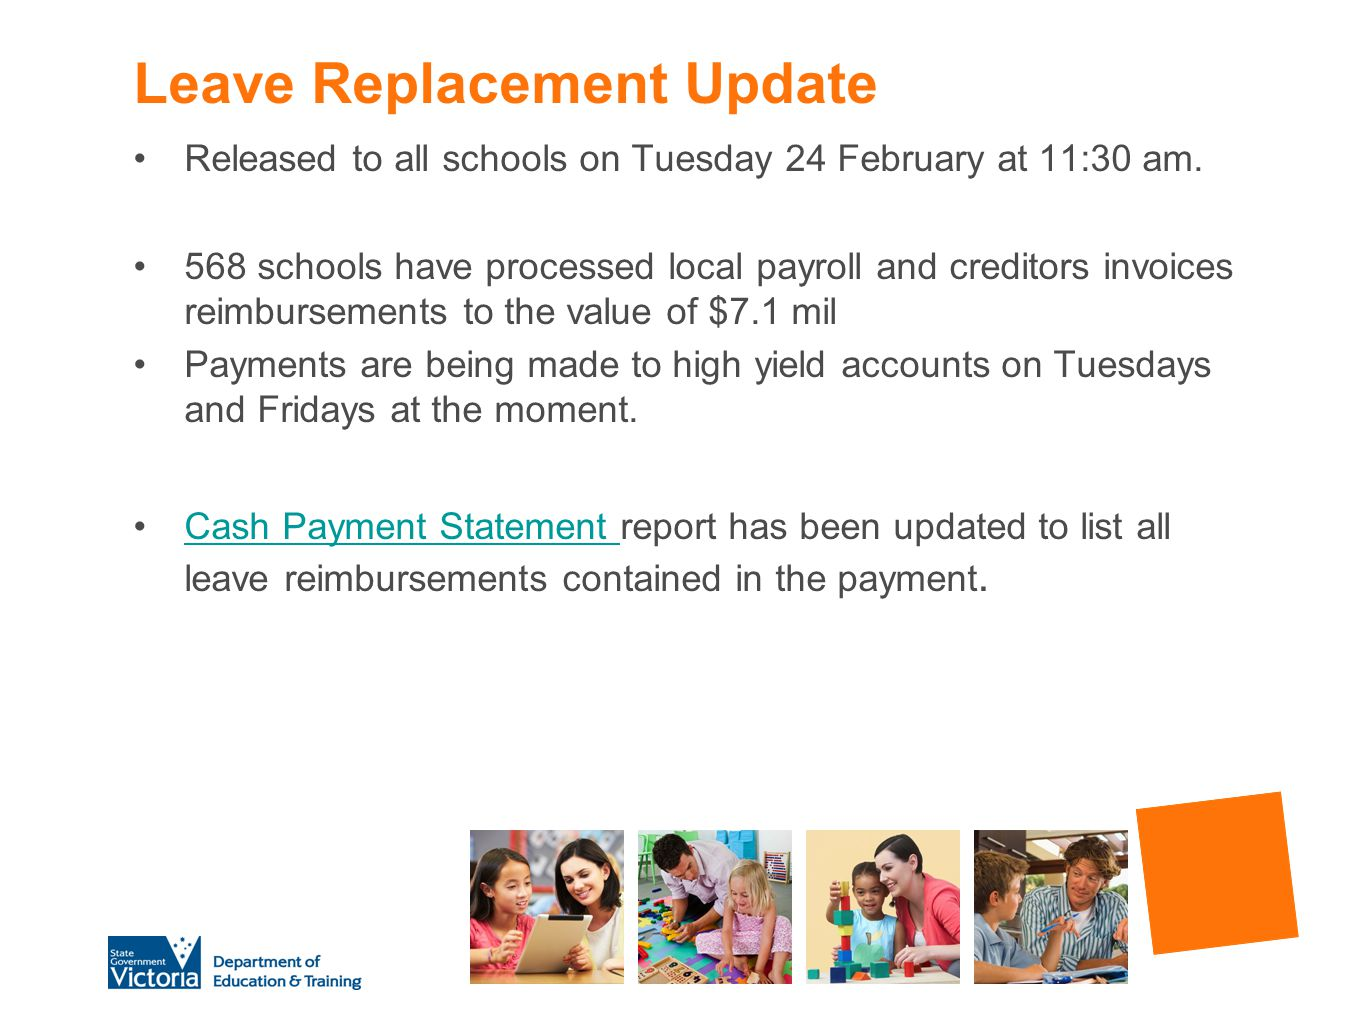 Leave Replacement Update Released to all schools on Tuesday 24 February at 11:30 am. 568 schools have processed local payroll and creditors invoices r